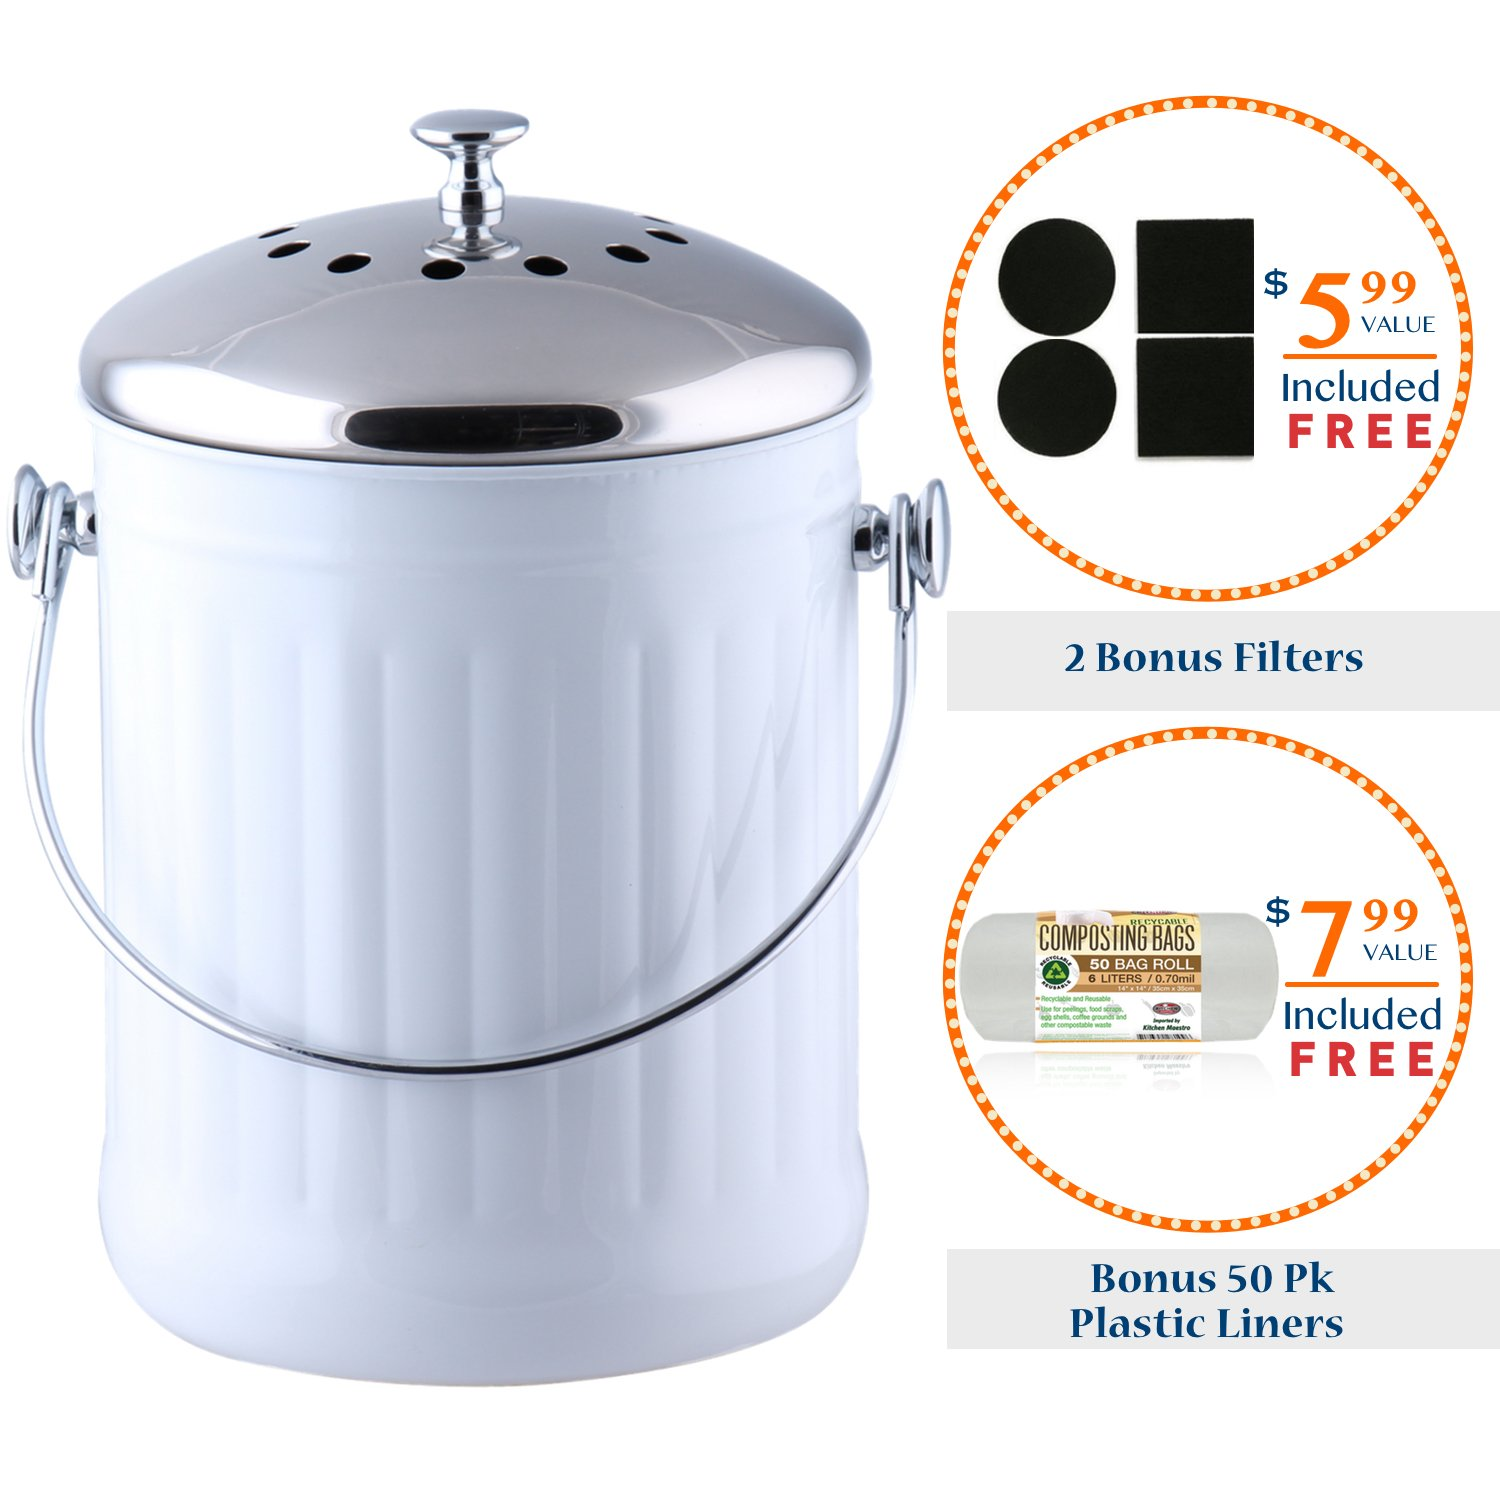 amazoncom kitchen maestro counter top stainless steel compost bin with 2 odor absorbing filter sets and 50 compost bags white kitchen u0026 dining